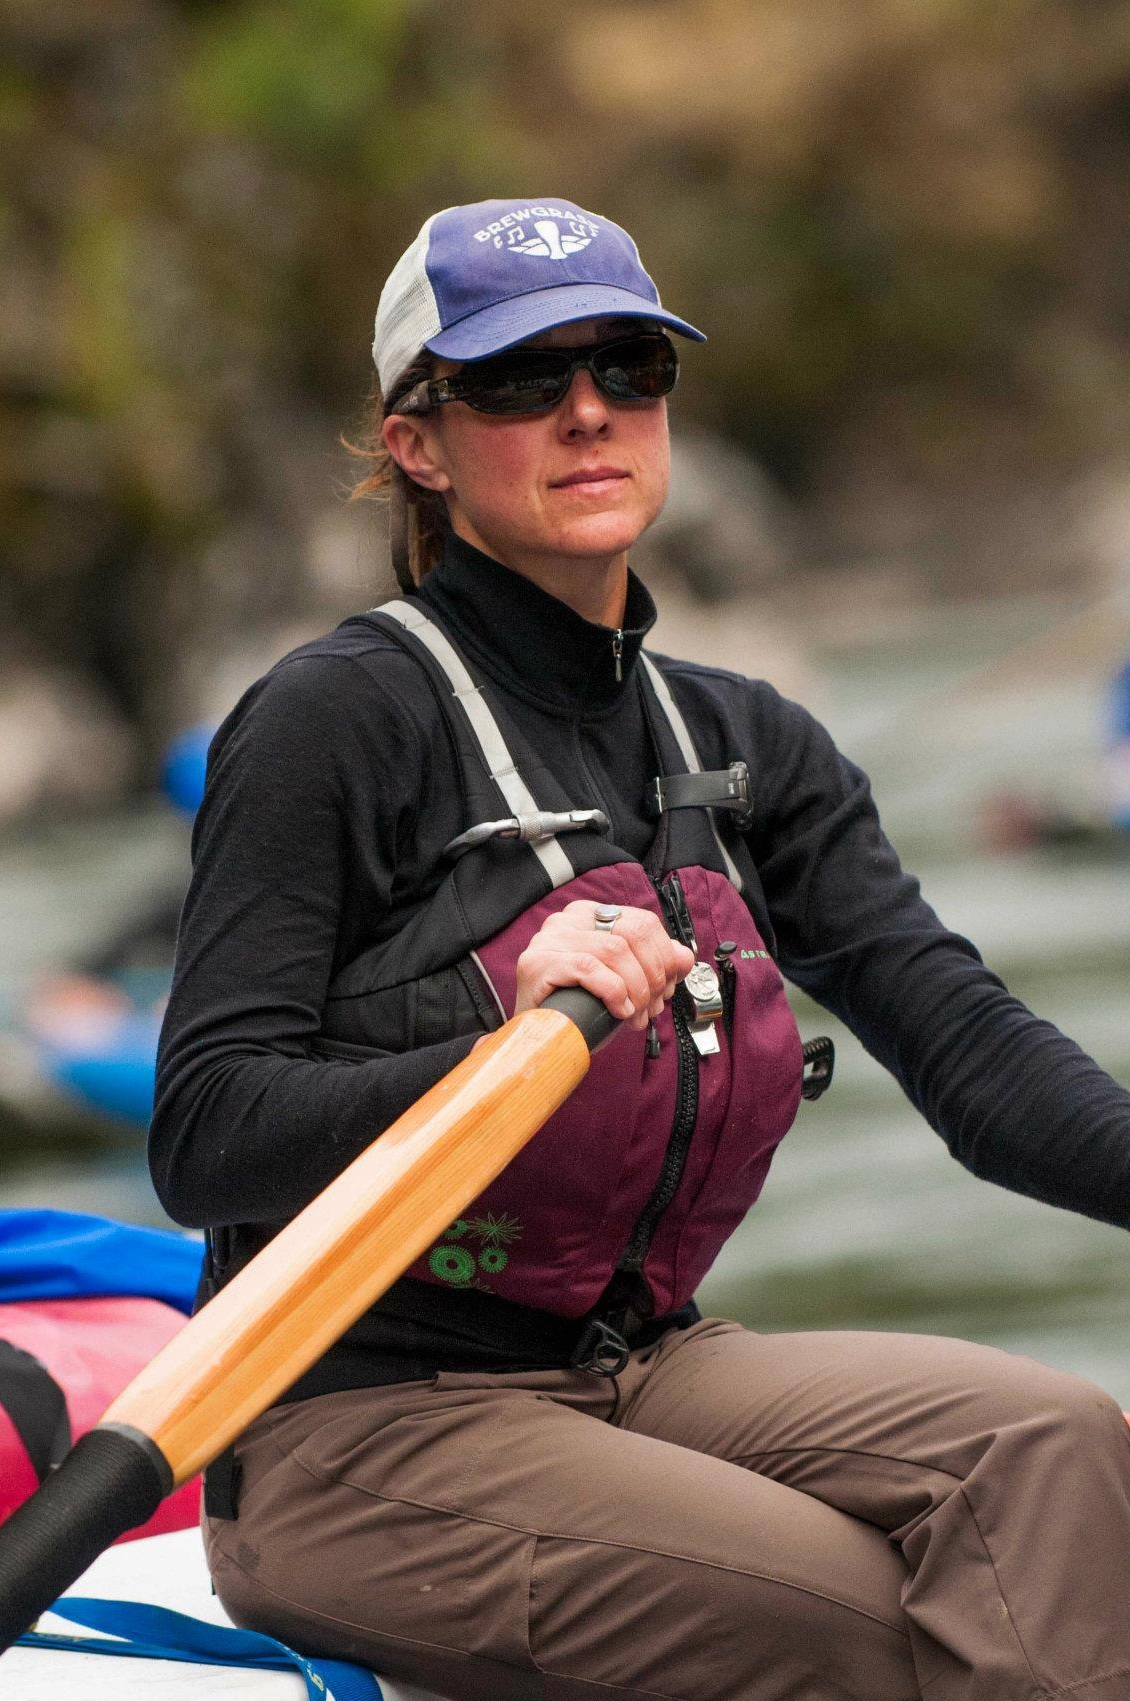 Robyn Janssen, Clean Water Campaigner and now Rogue Riverkeeper.